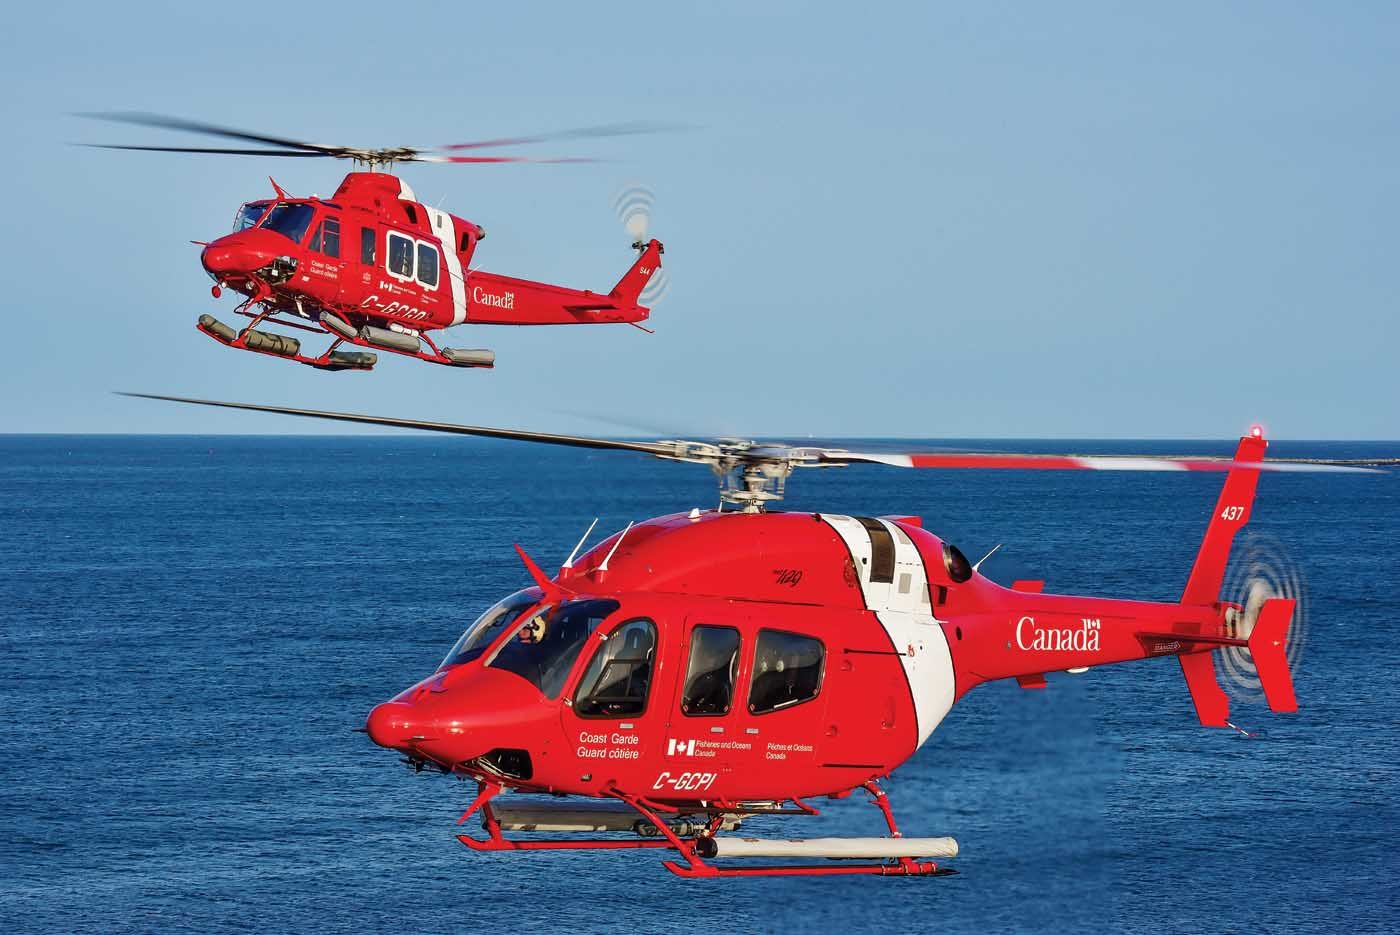 Two coast guard helicopters in flight